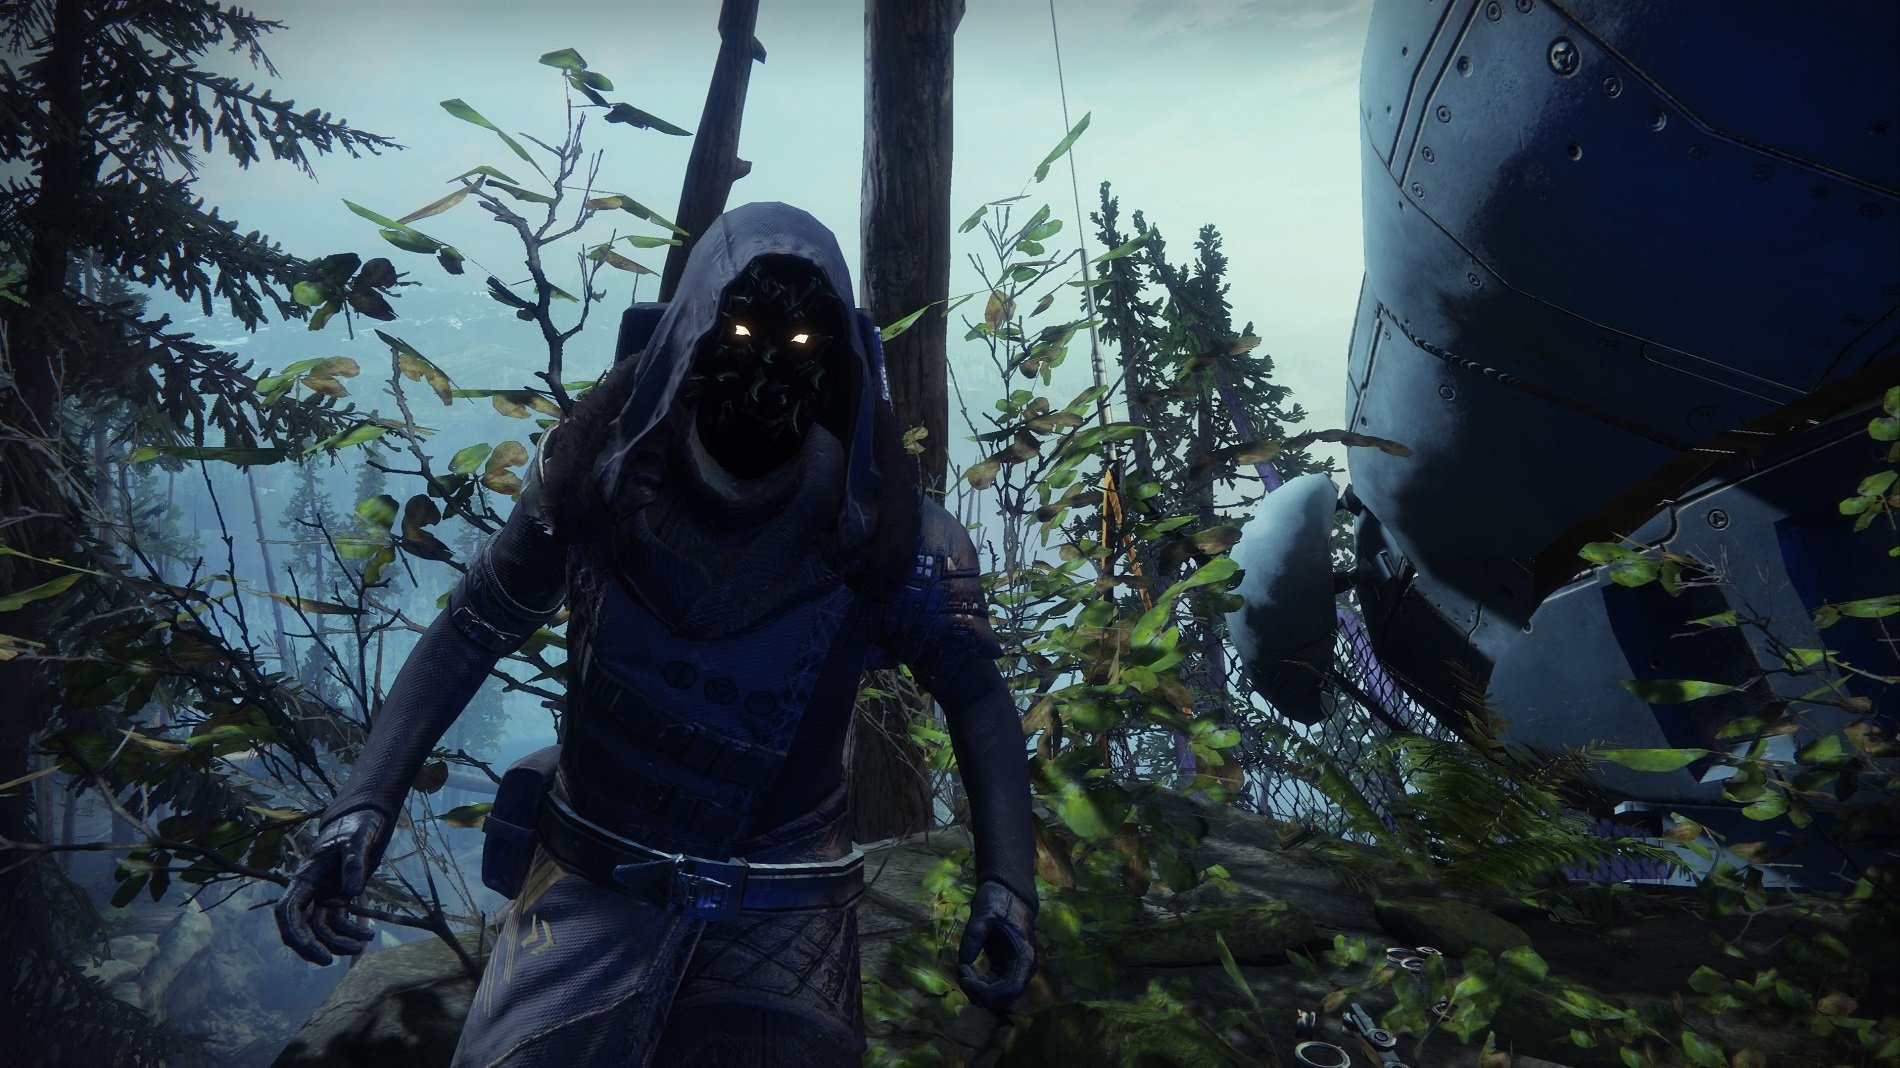 Where to find Xur in Destiny 2 - May 29, 2020